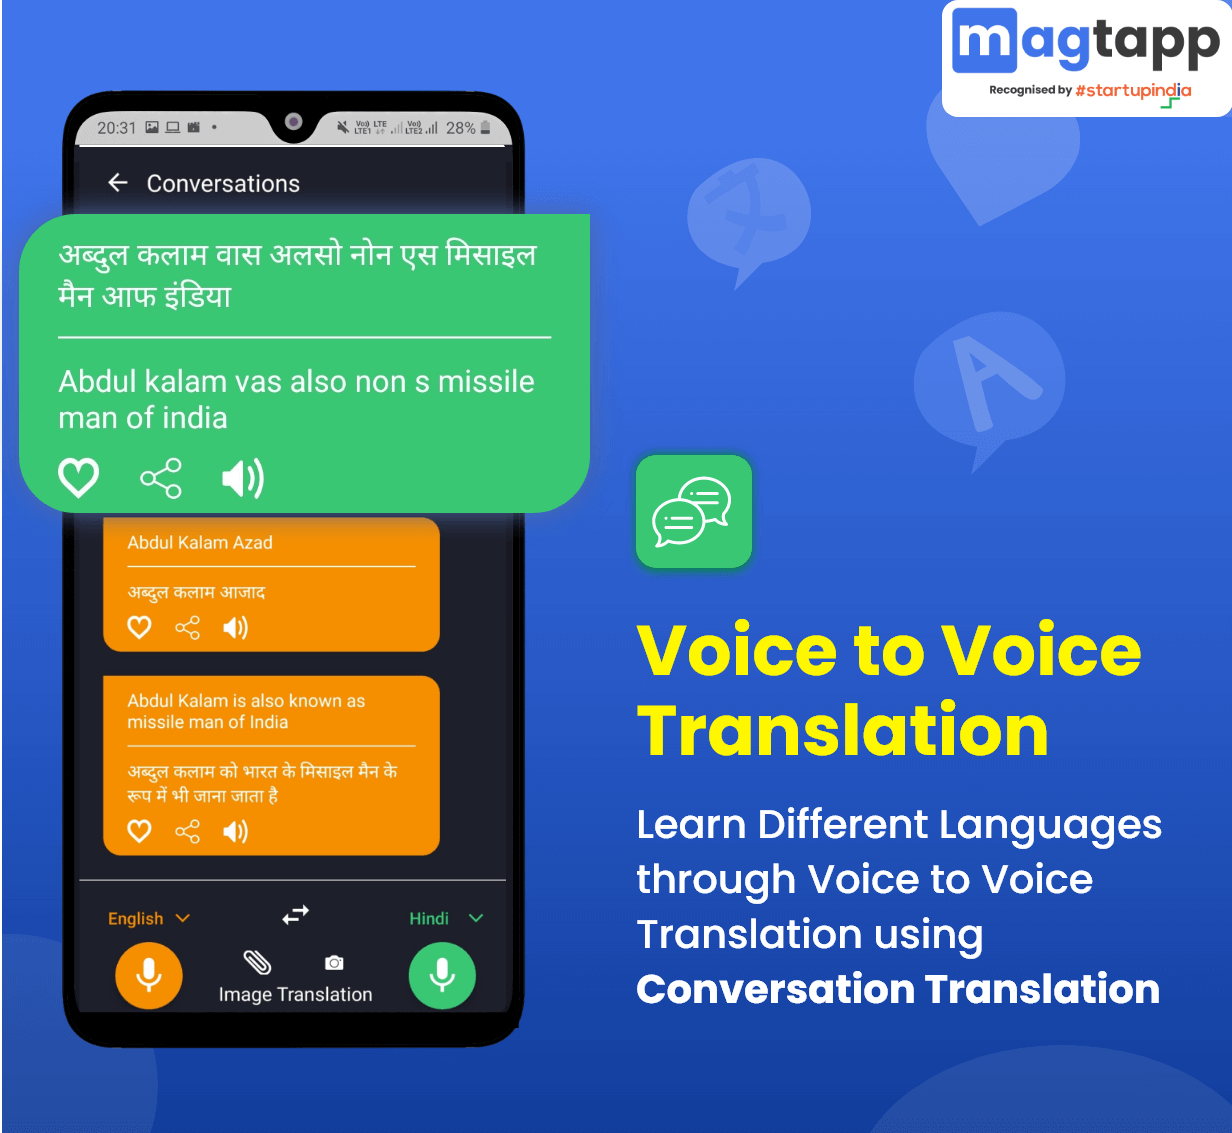 Voice to Voice Translation